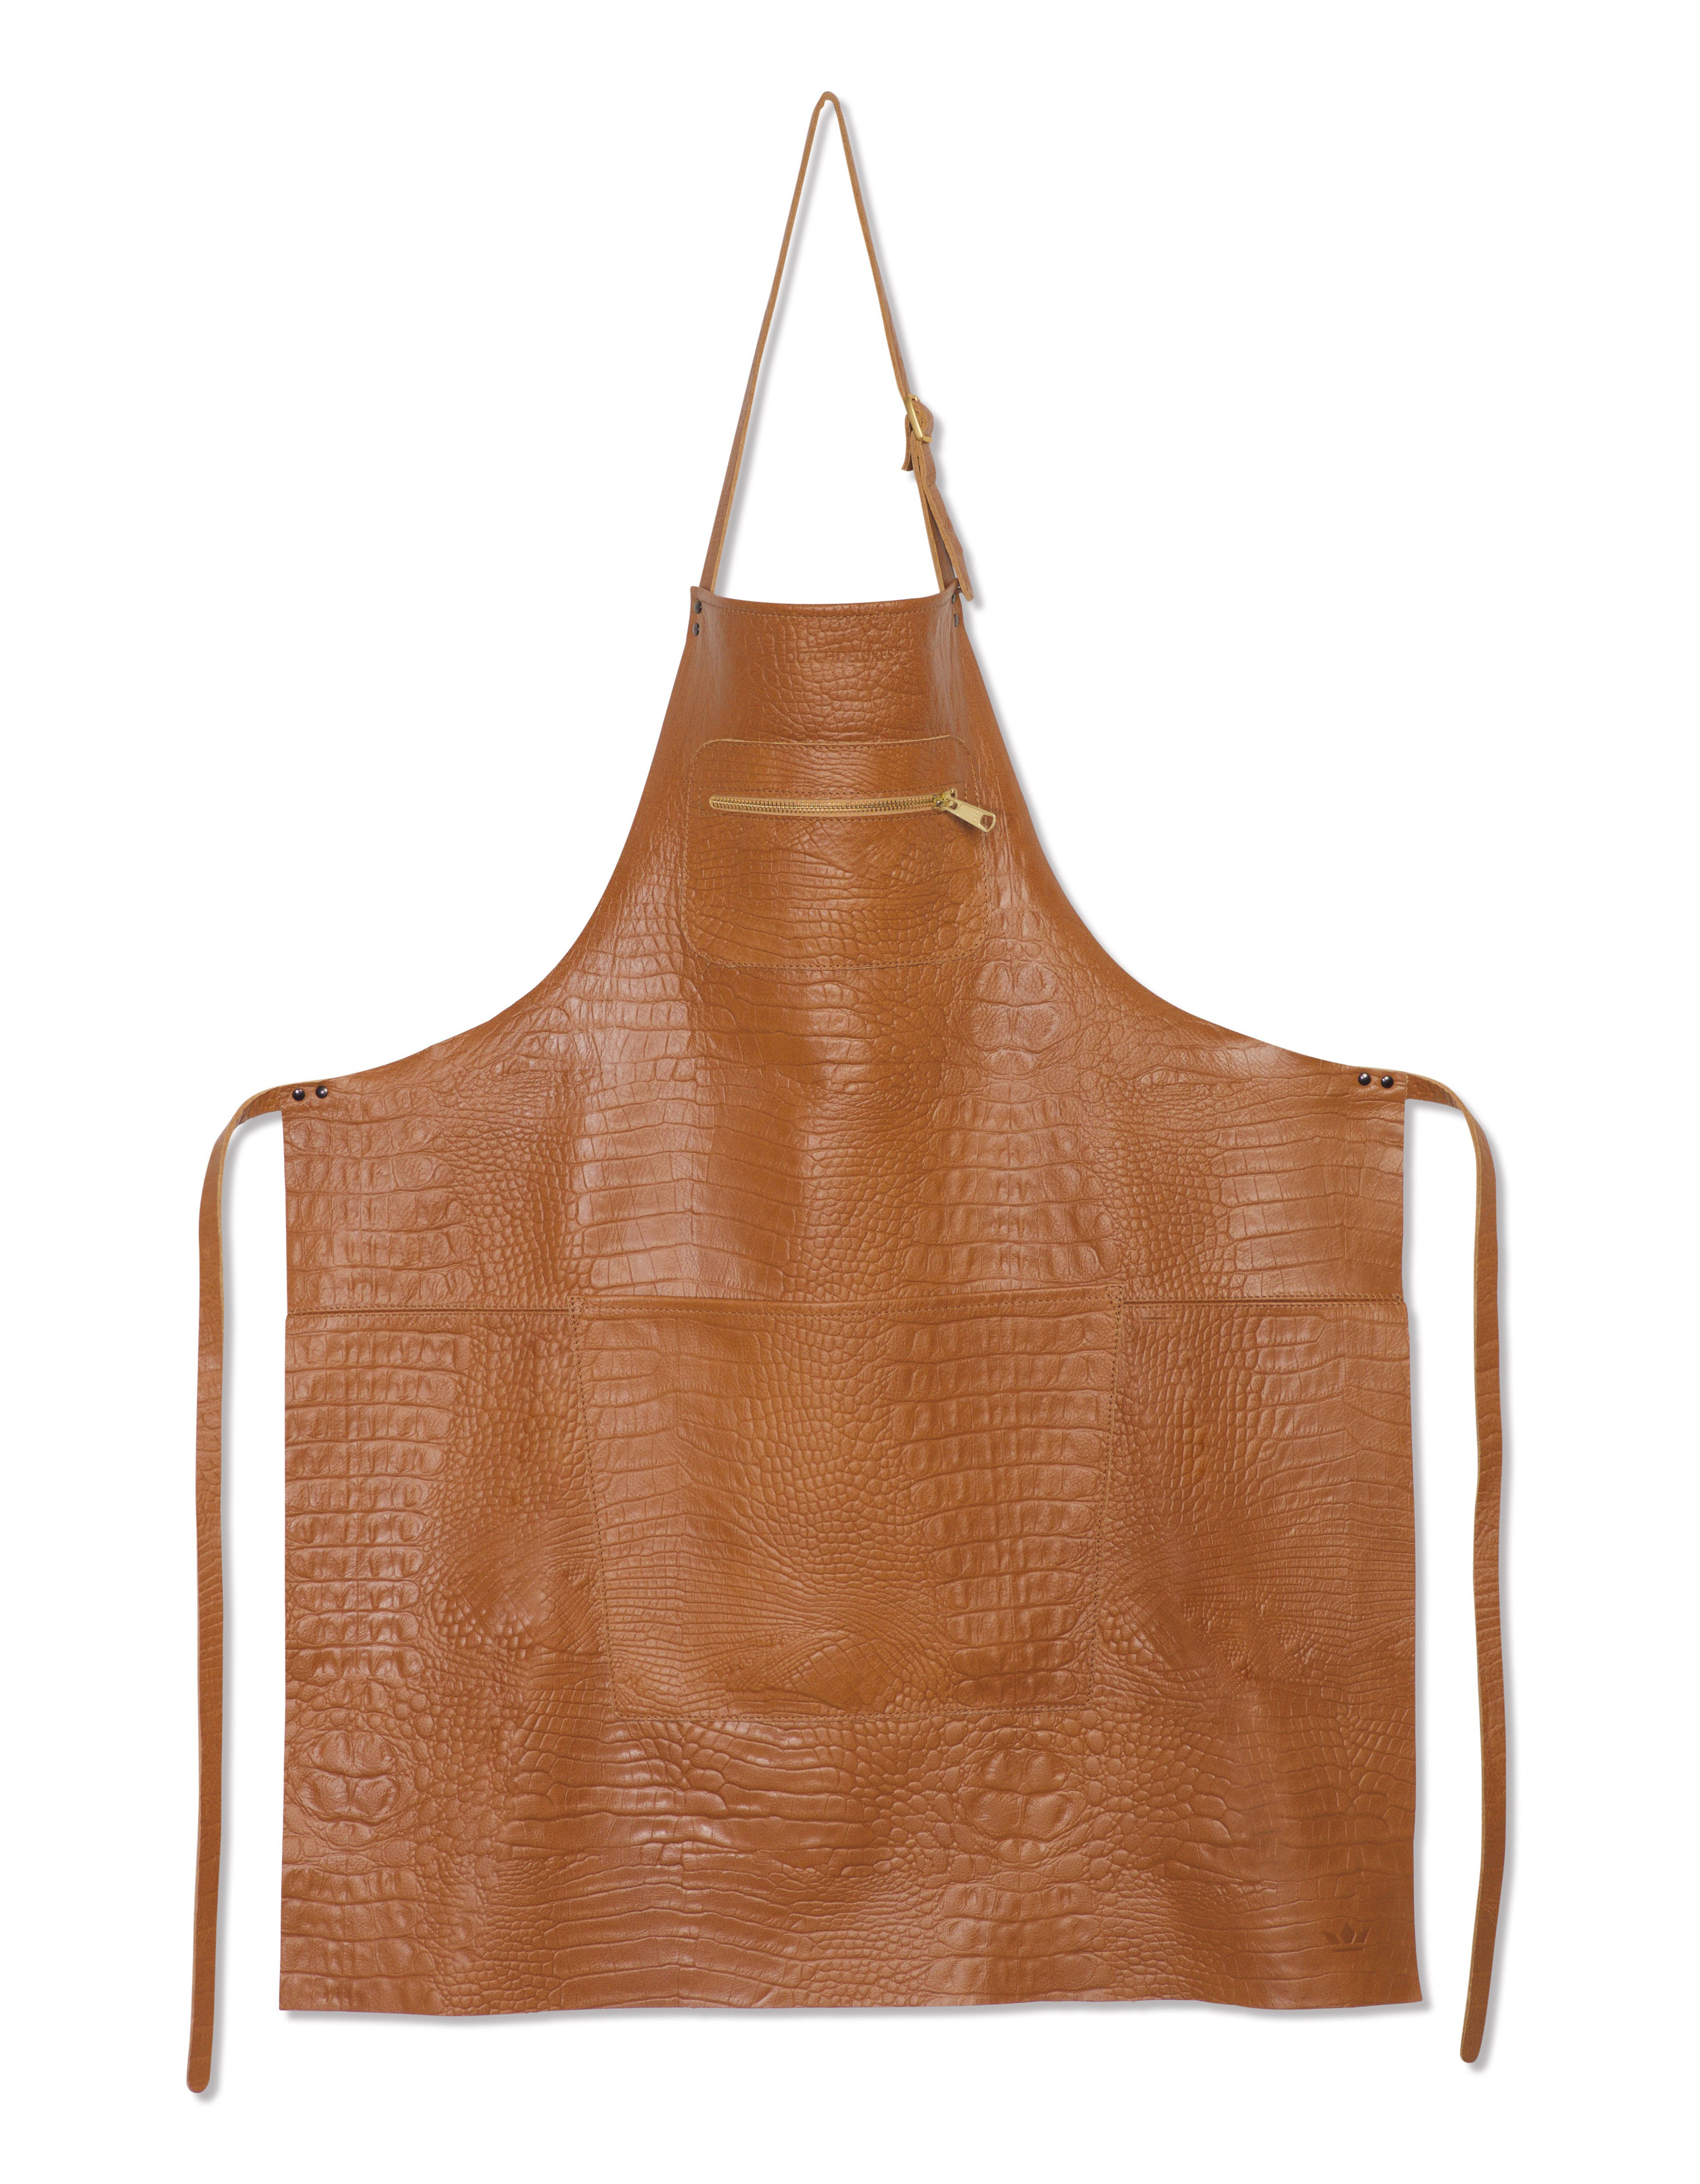 Kitchenware - Tea Towels & Aprons - Apron - crocodile-effect leather / Zipped pocket by Dutchdeluxes - Natural - Full grain leather